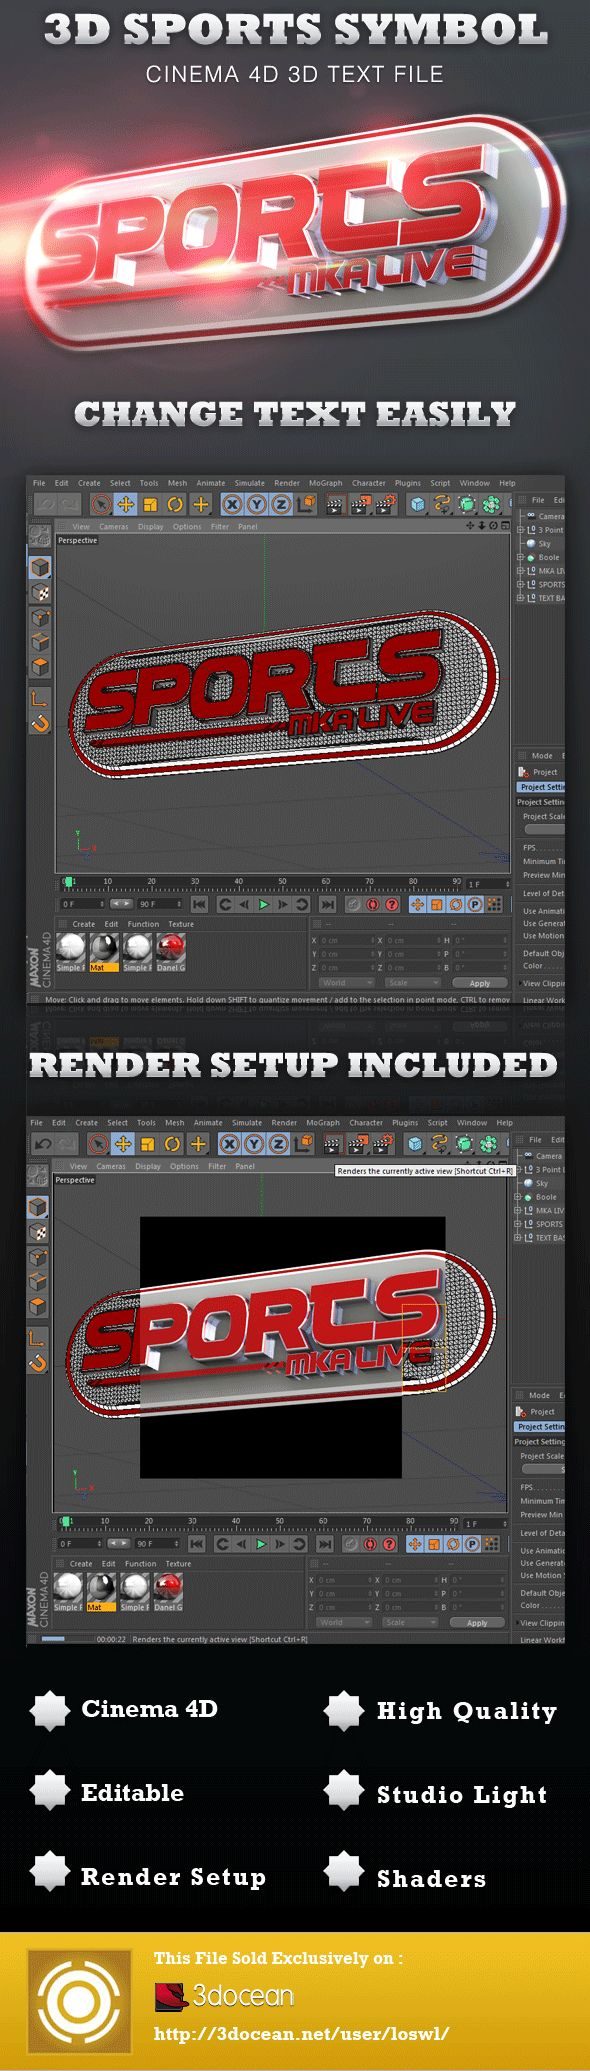 This 3D Sports Symbol Cinema 4D File is sold exclusively on 3DOcean, it can be used for Animations and Print Projects including Posters, Event Flyers, etc. In this package you'll find 1 Cinema 4D Project File. The file includes shaders and light setup for rendering, all objects are grouped and named for easy editing. - $4.00